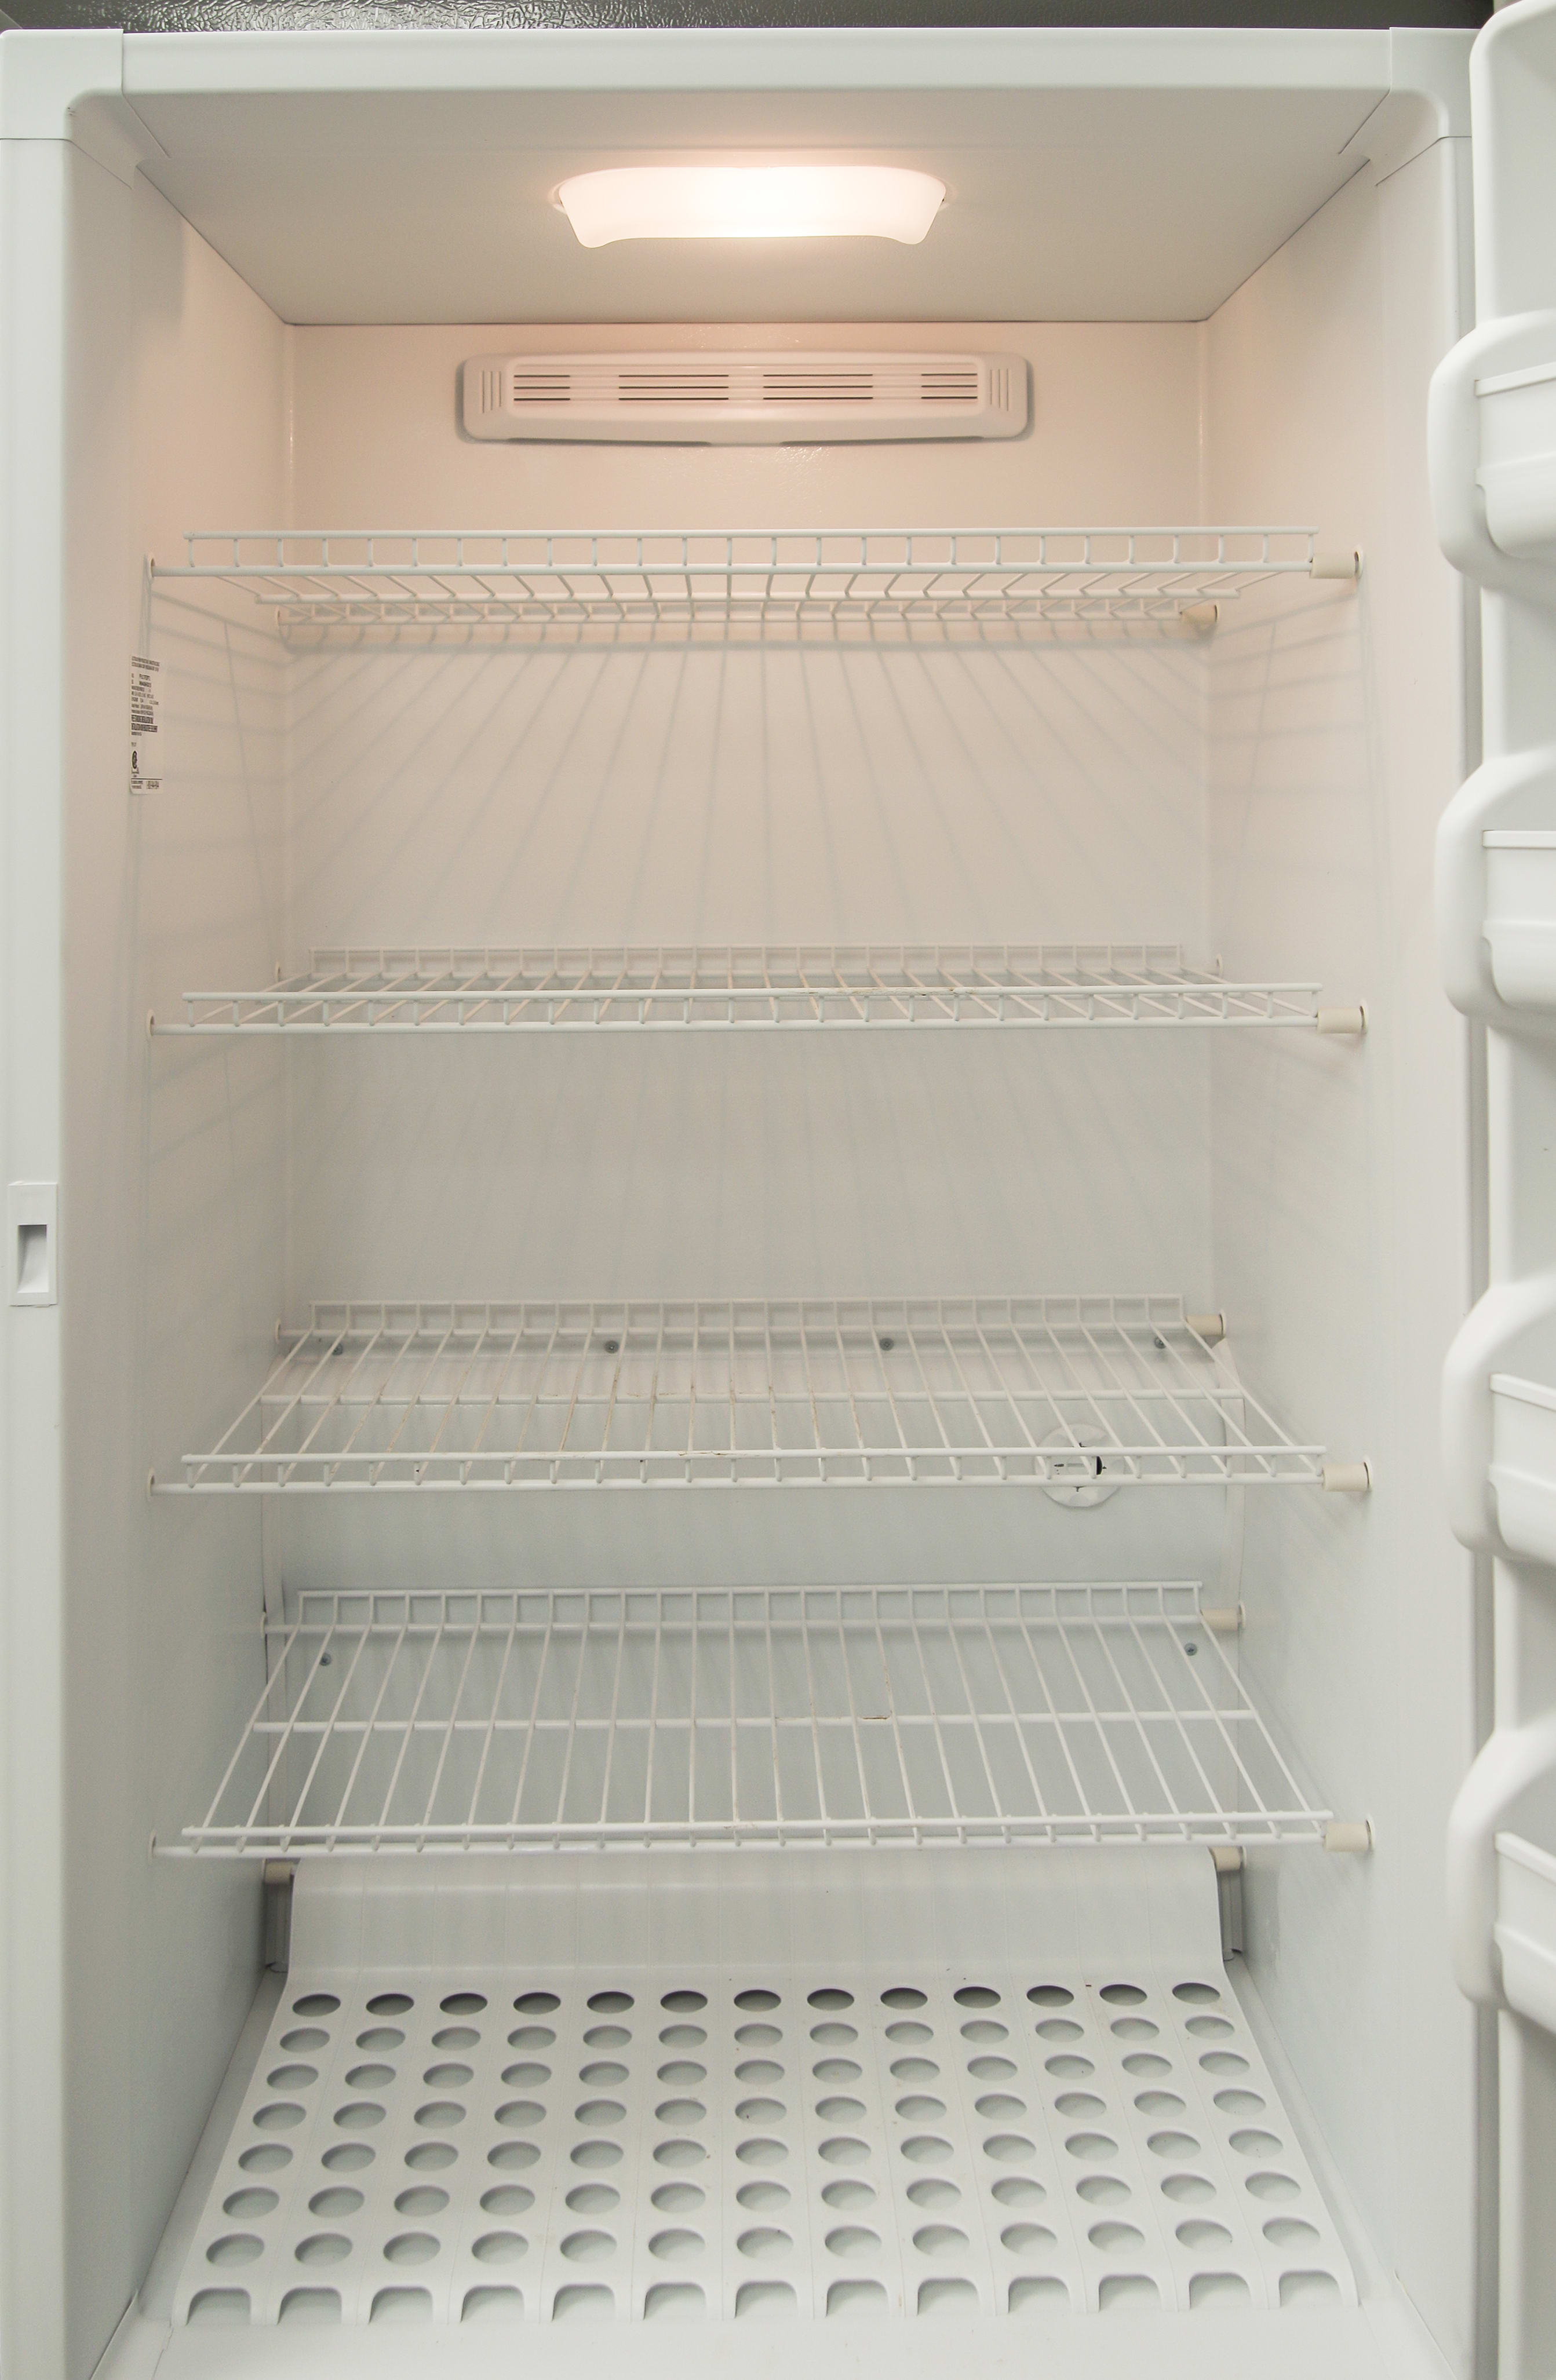 The Frigidaire FFU17F2PT's internal light should help you find your food more easily.